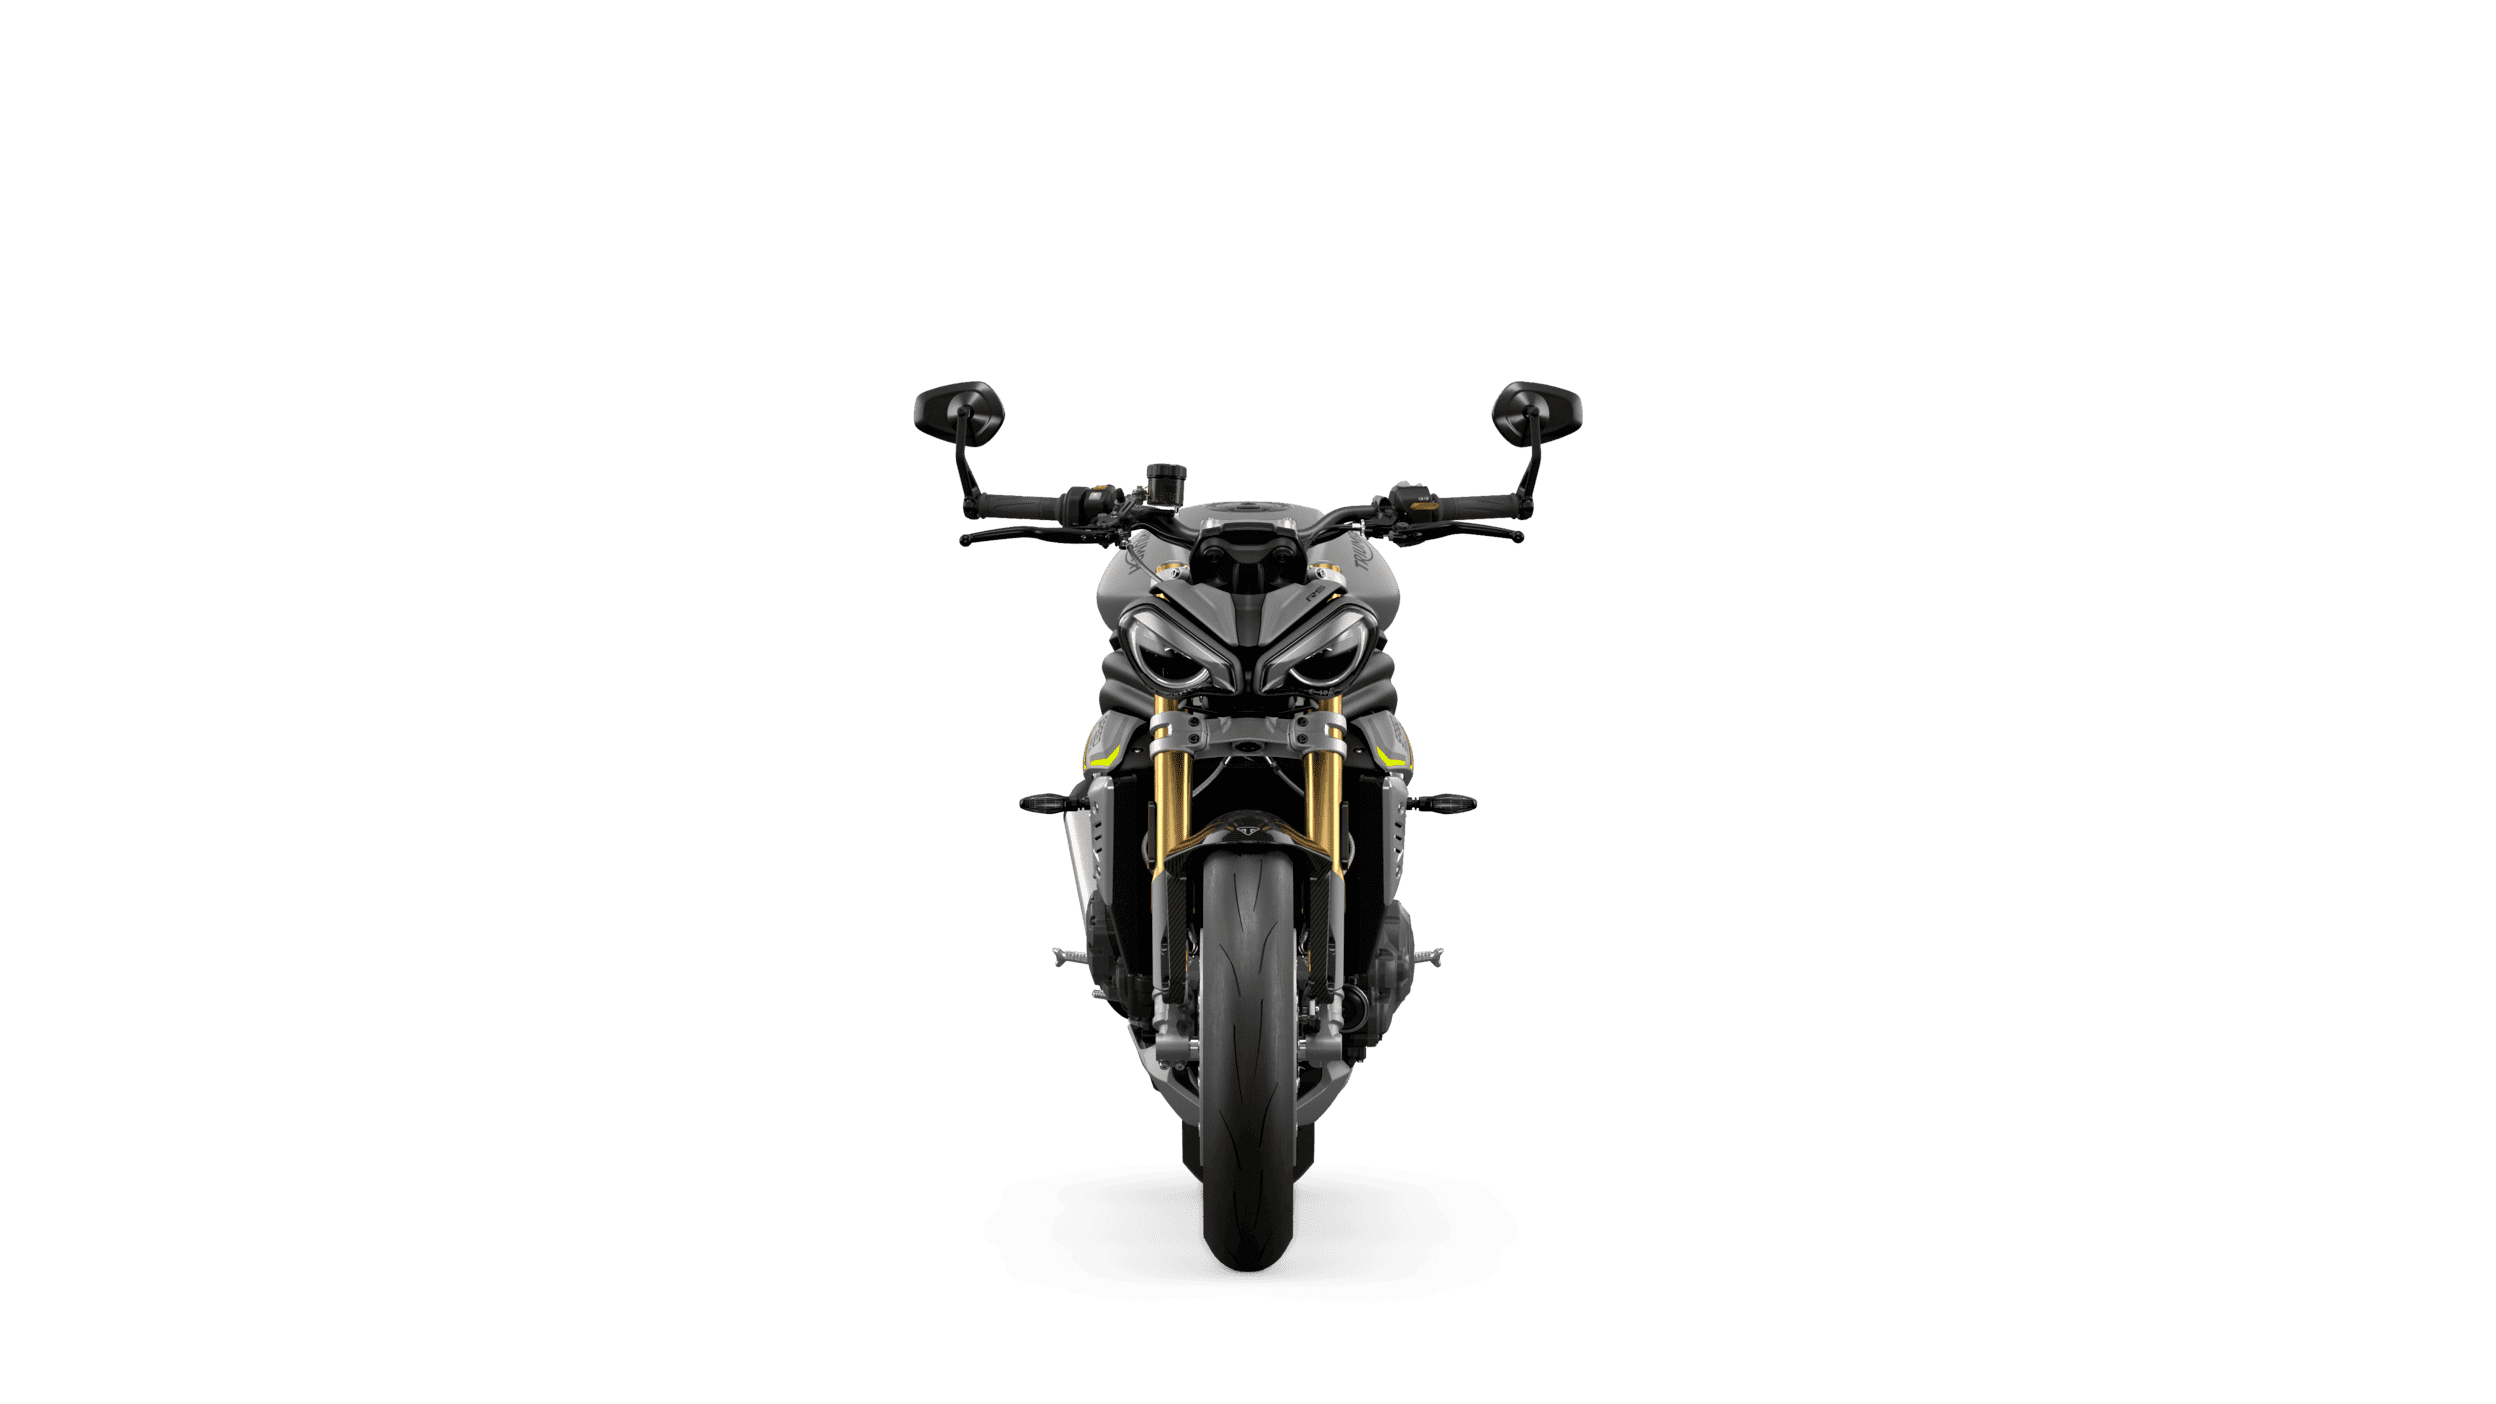 SPEED TRIPLE 1200 RS MT FRONT